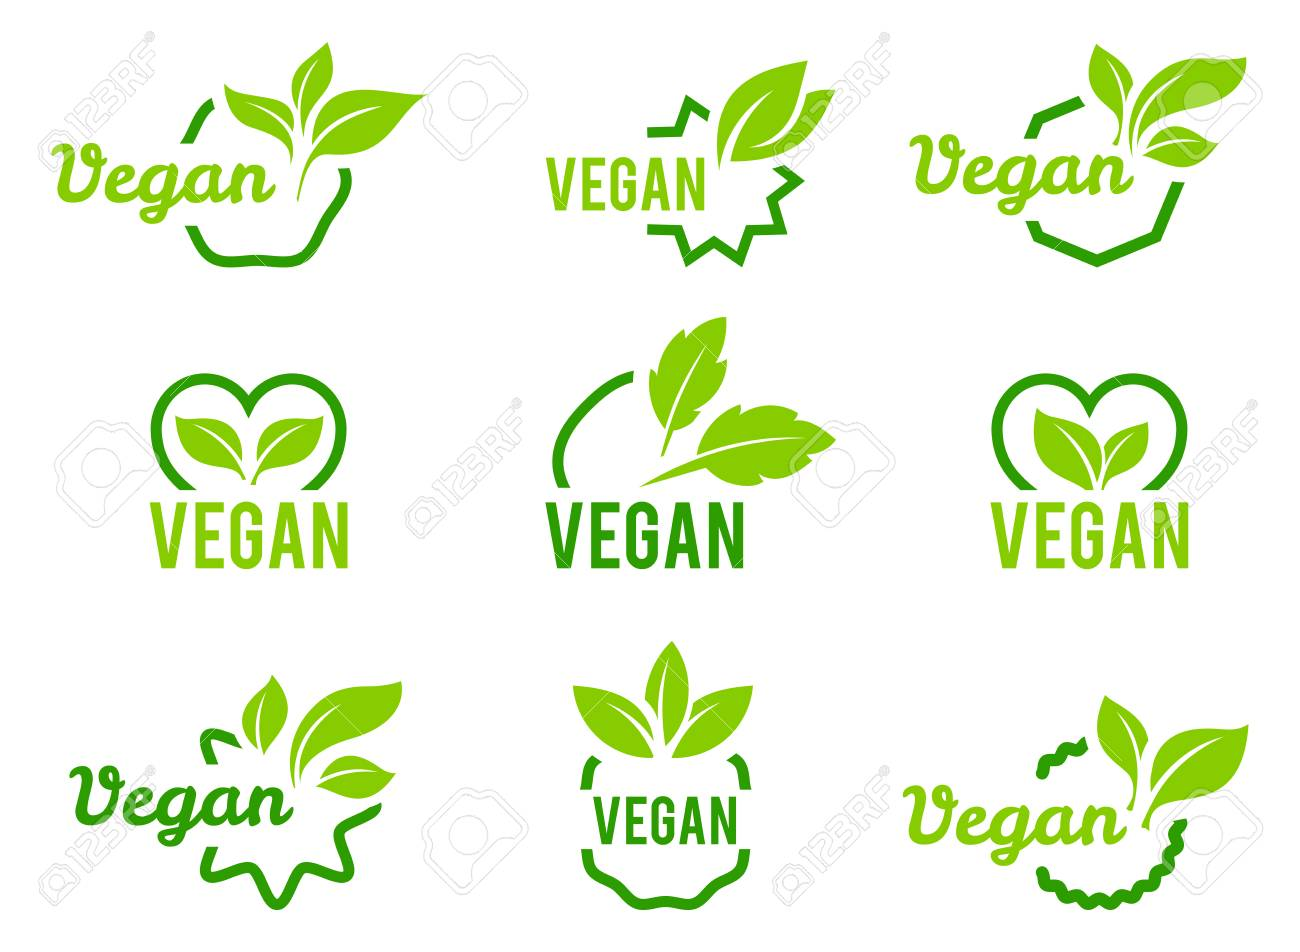 Vegan icon. Set of badges, emblems and stamps vector. Abstract leaf set isolated on white background. - 121873669